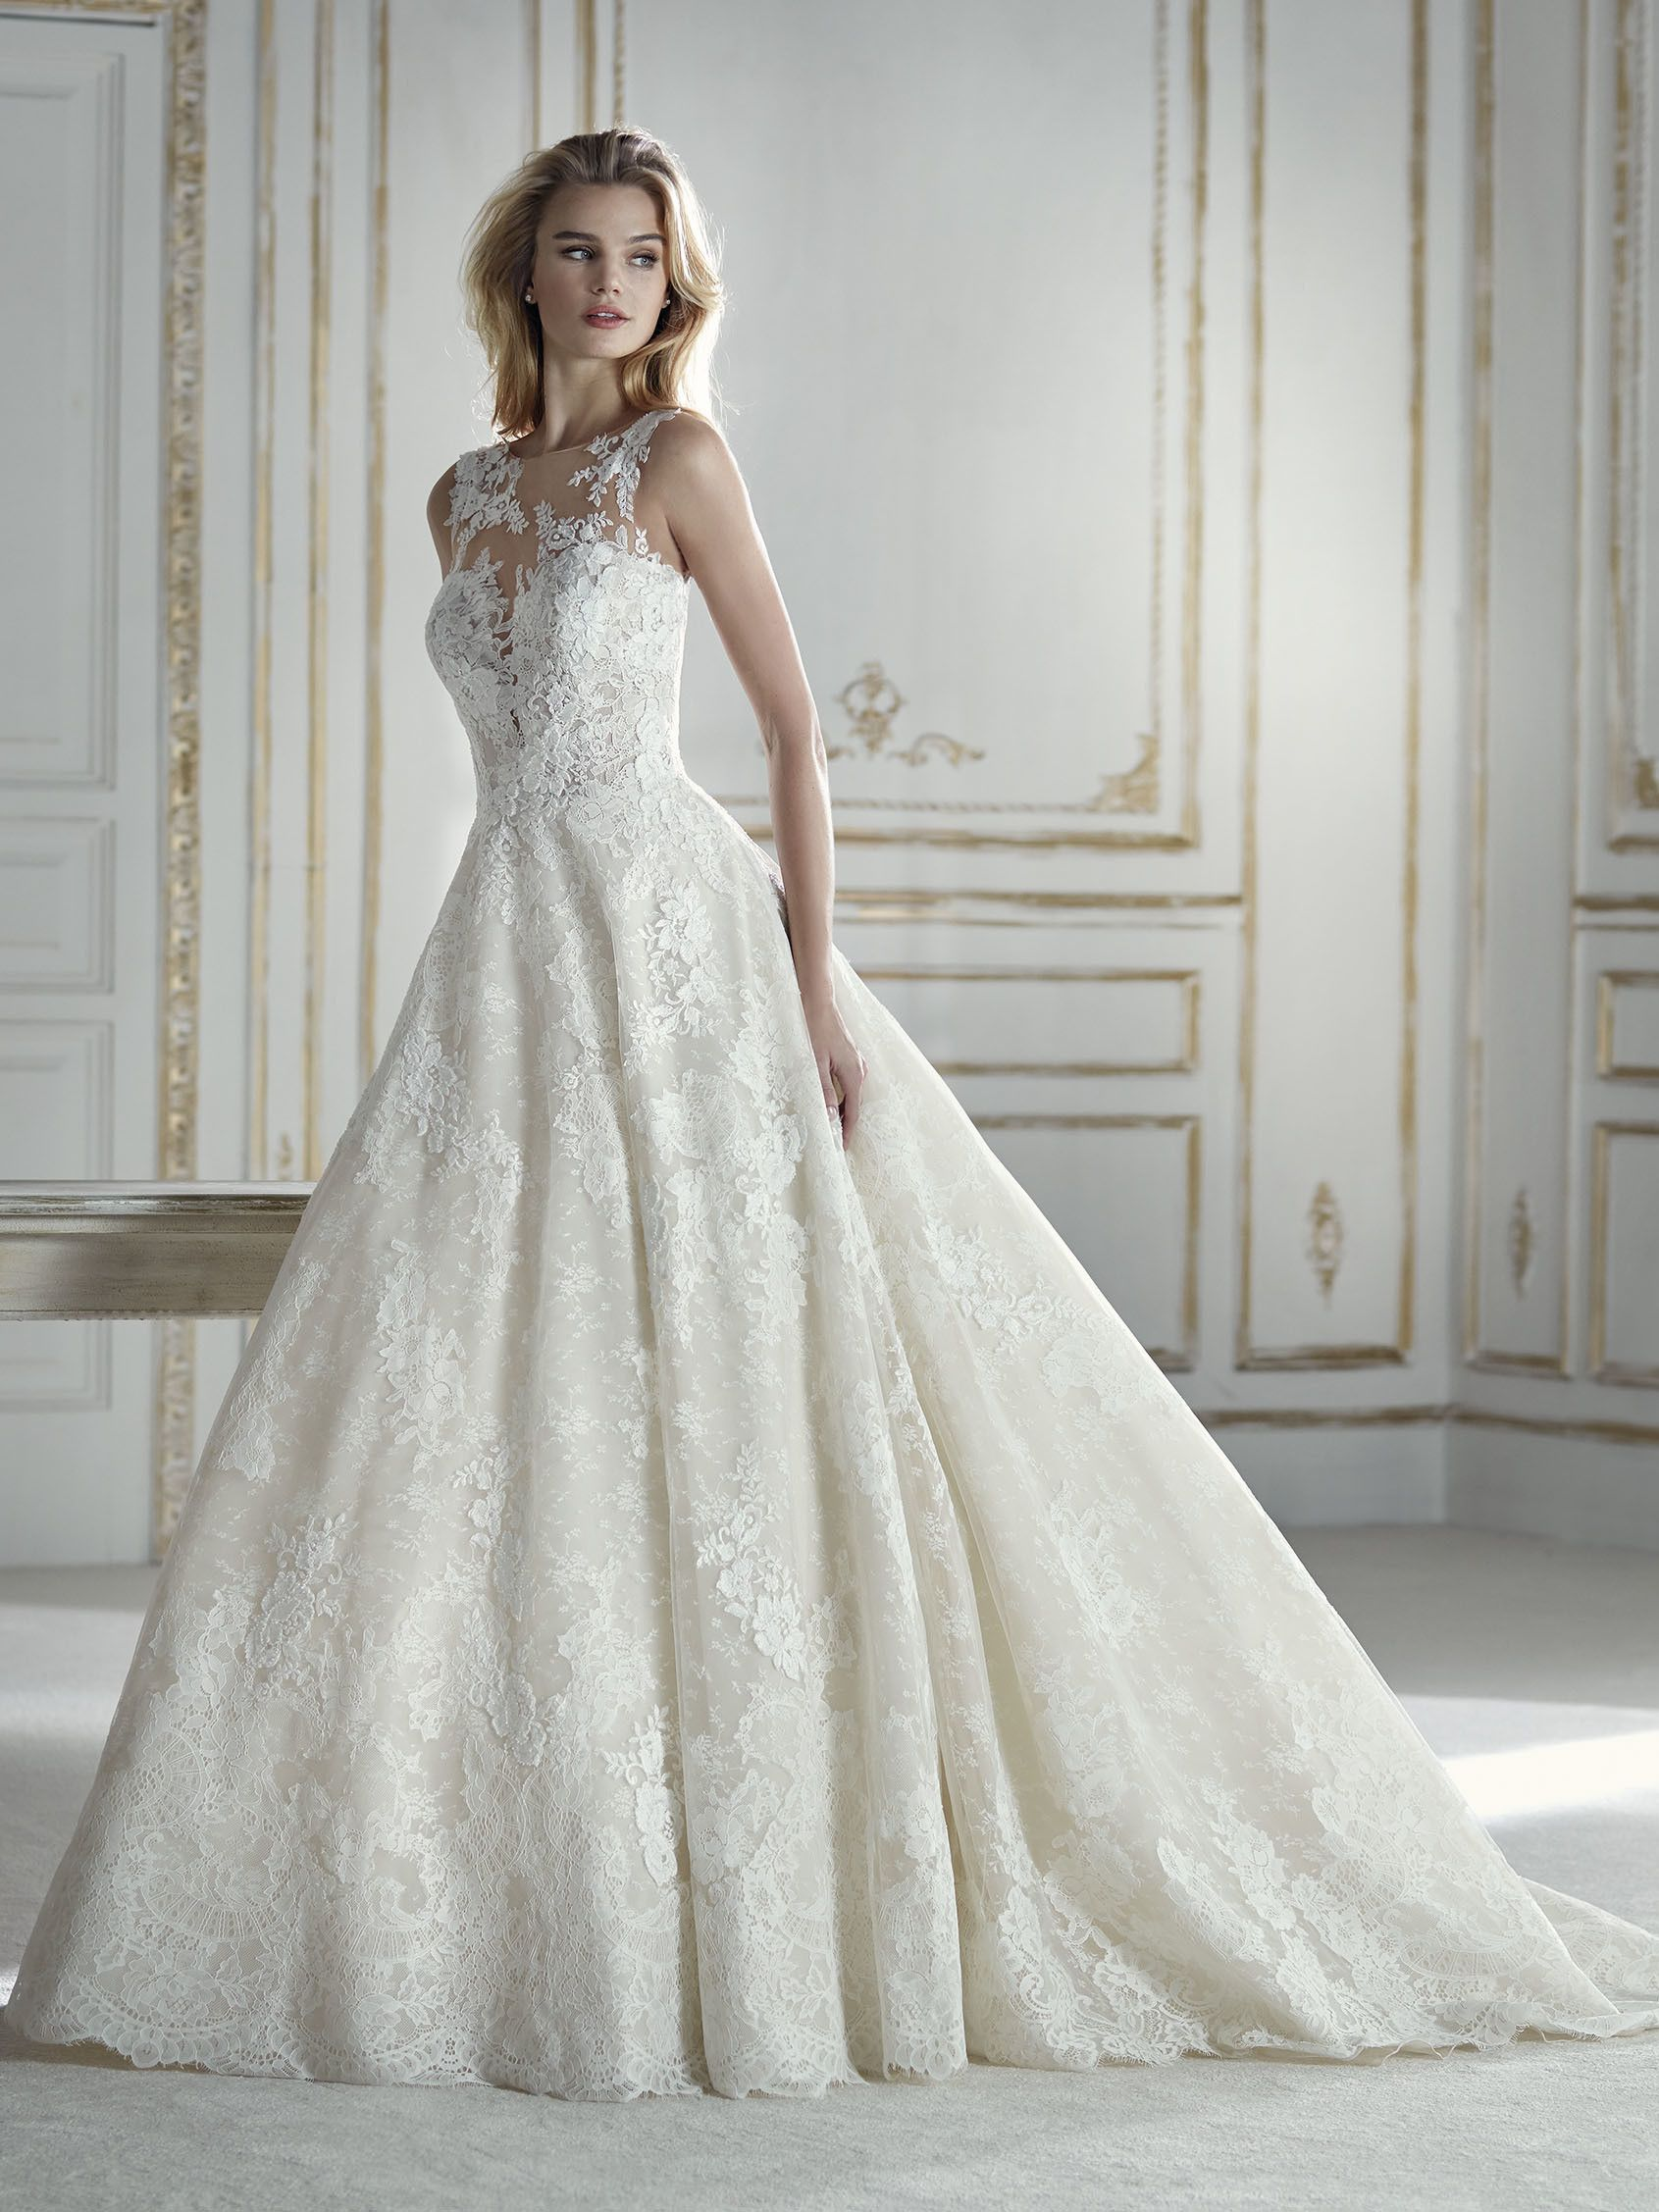 Lasposa San Patrick 2018 Wedding Dress Available At Esposa Stores